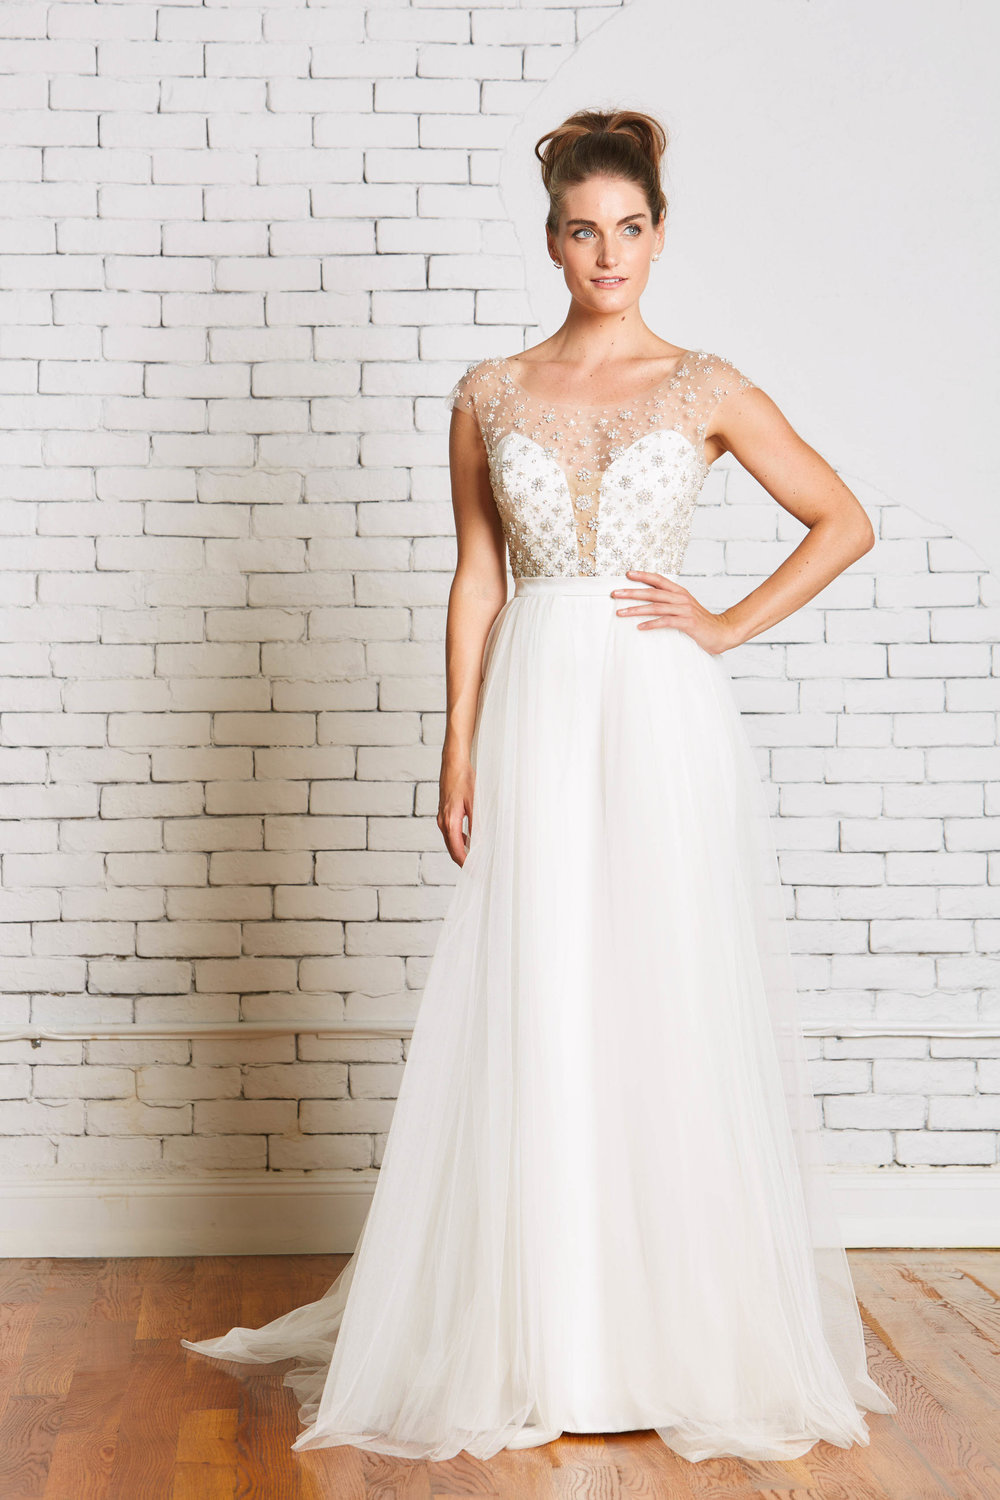 26.Rebecca_Schoneveld_Olso_top_Hensley_Gown_Millie_Skirt-50.jpg